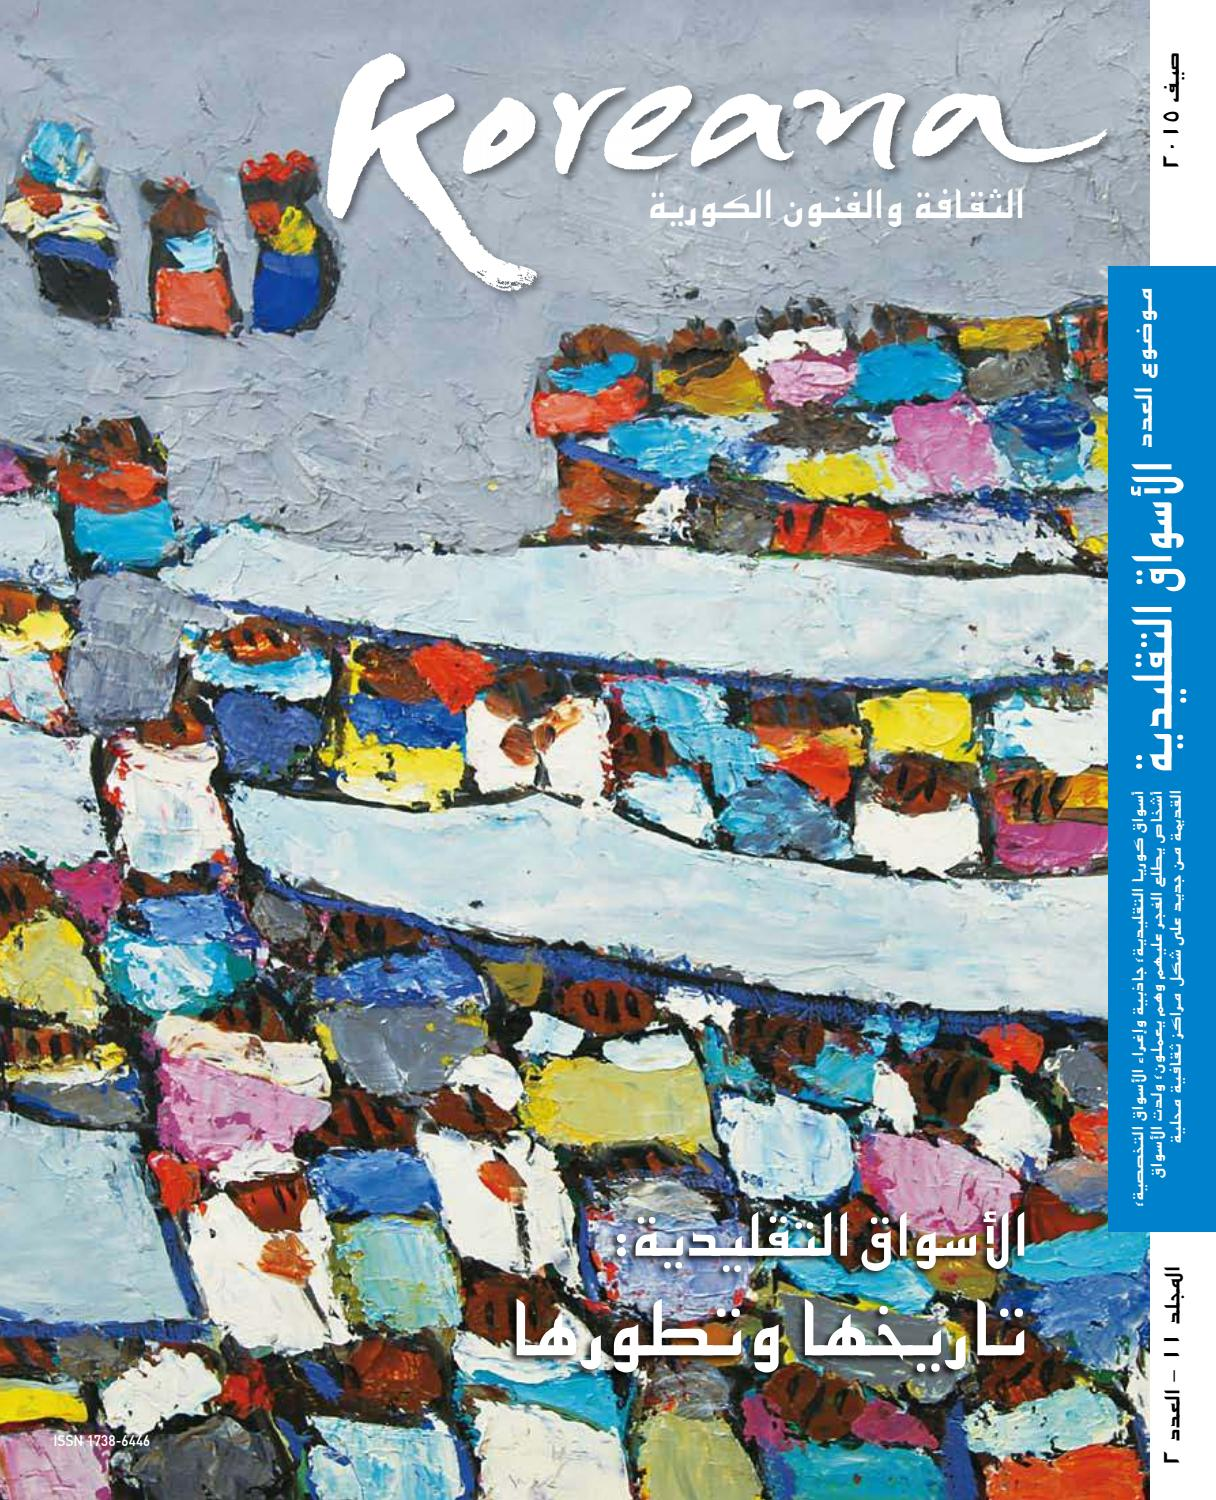 d30587762 Koreana Summer 2015 (Arabic) by The Korea Foundation - issuu